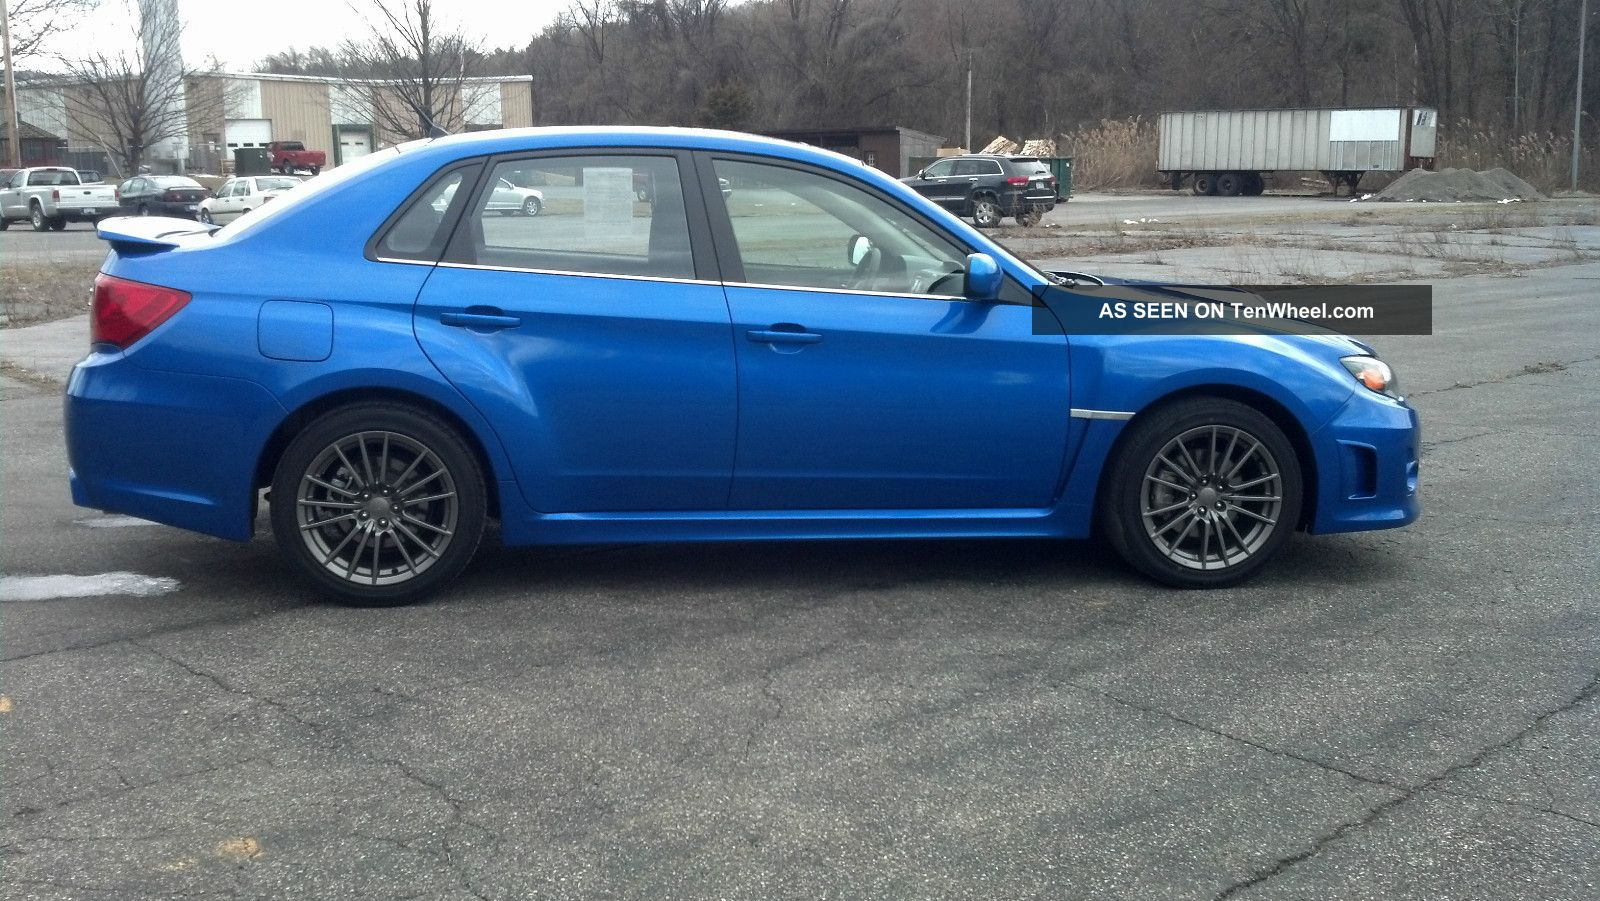 2011 subaru impreza wrx premium sedan 4 door 2 5l wheels fog lamps. Black Bedroom Furniture Sets. Home Design Ideas